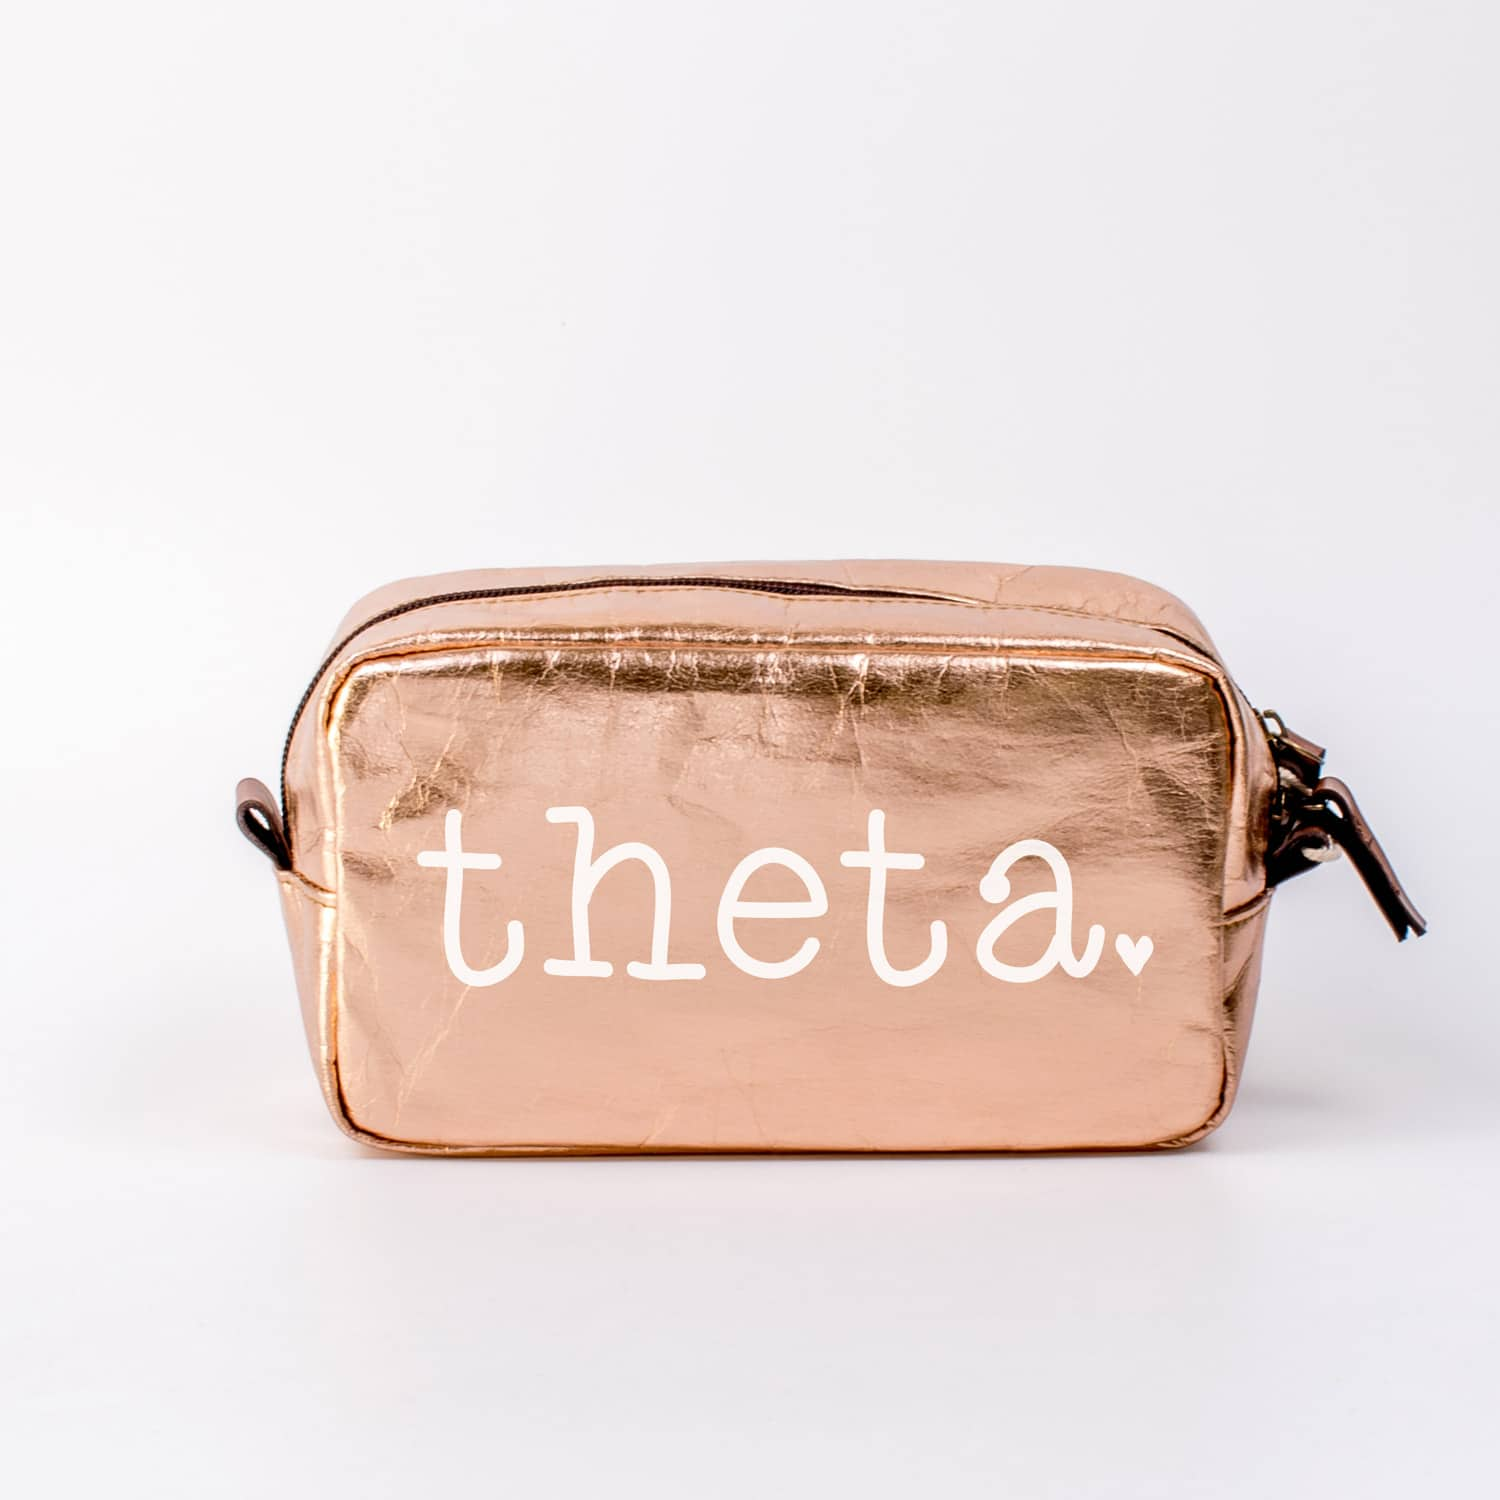 6cba1fbfb20 Kappa Alpha Theta Medium Cosmetic Bag from www.alistgreek.com